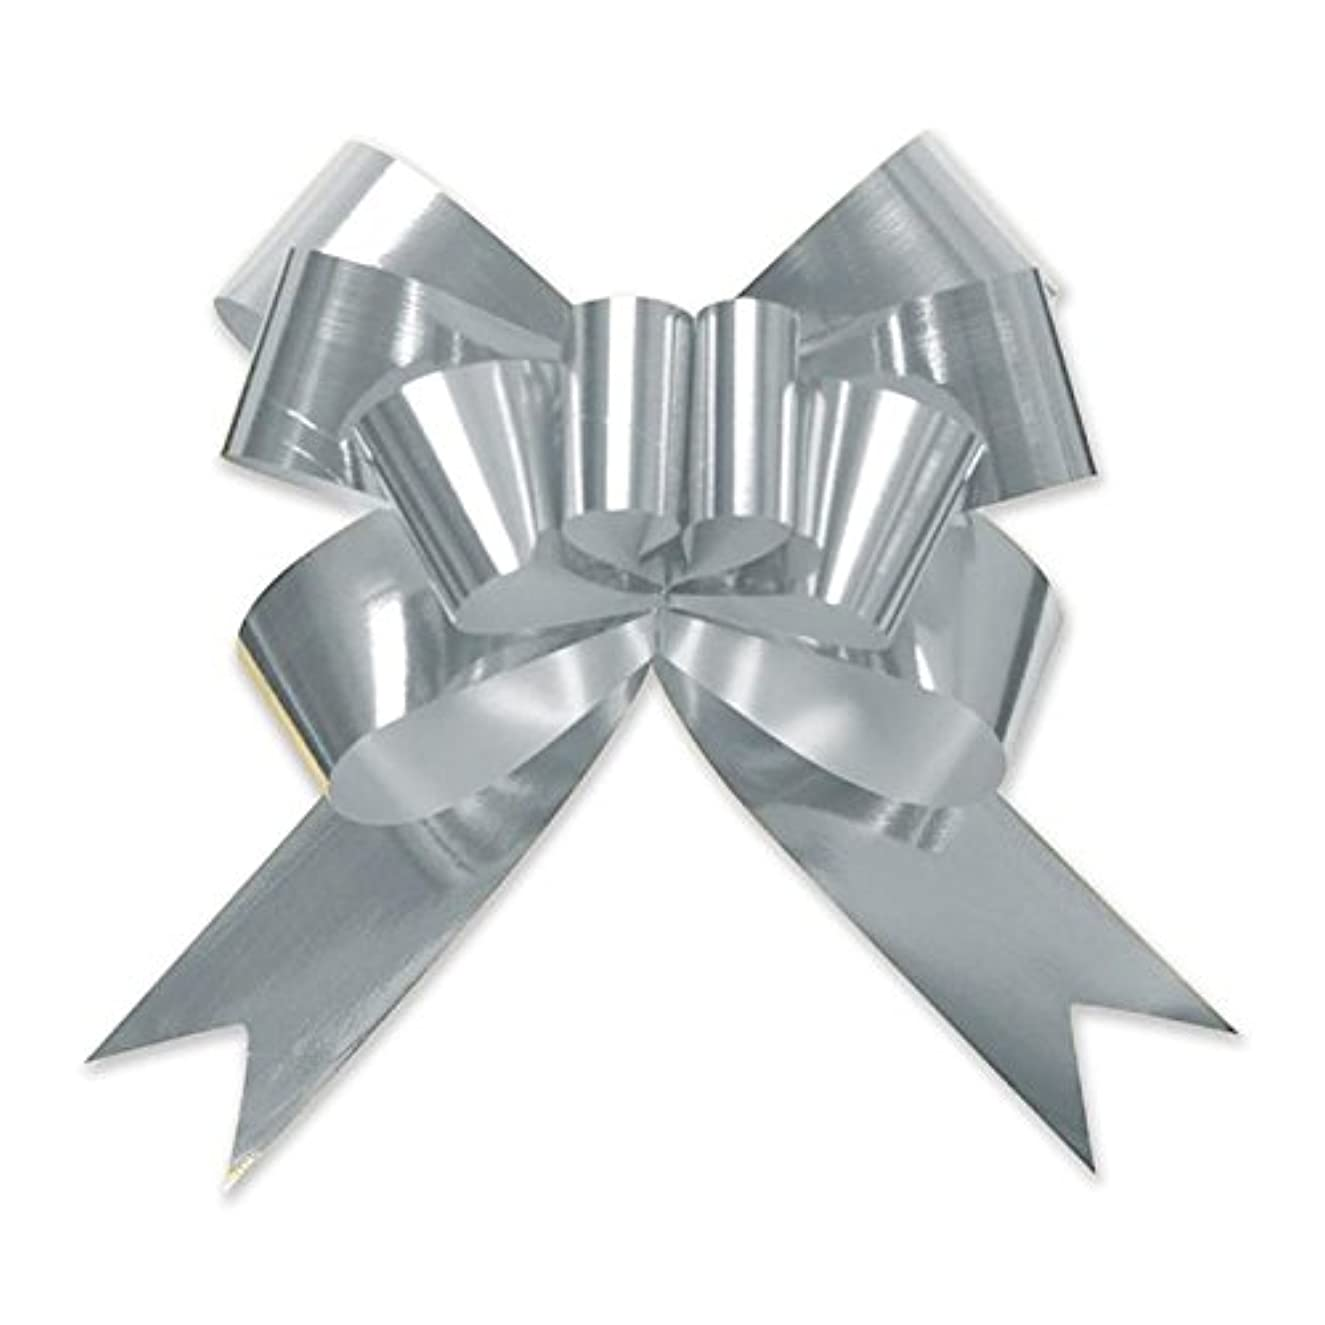 Berwick Offray 3910420 Butterfly Ribbon Pull Bow, 4'' Diameter with 8 Loops, Silver 100 Pieces